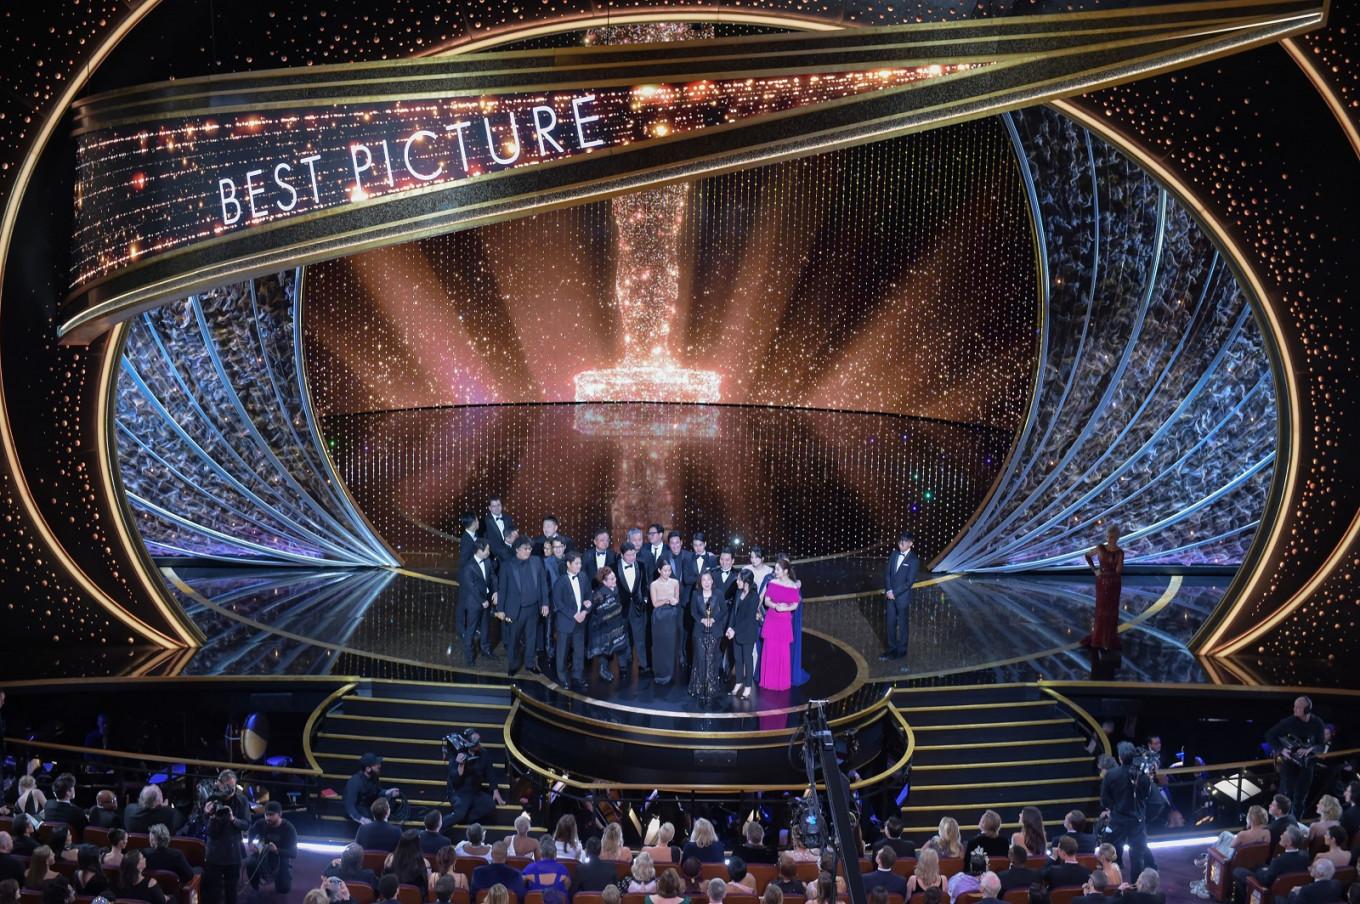 Oscars may be postponed due to coronavirus: Report